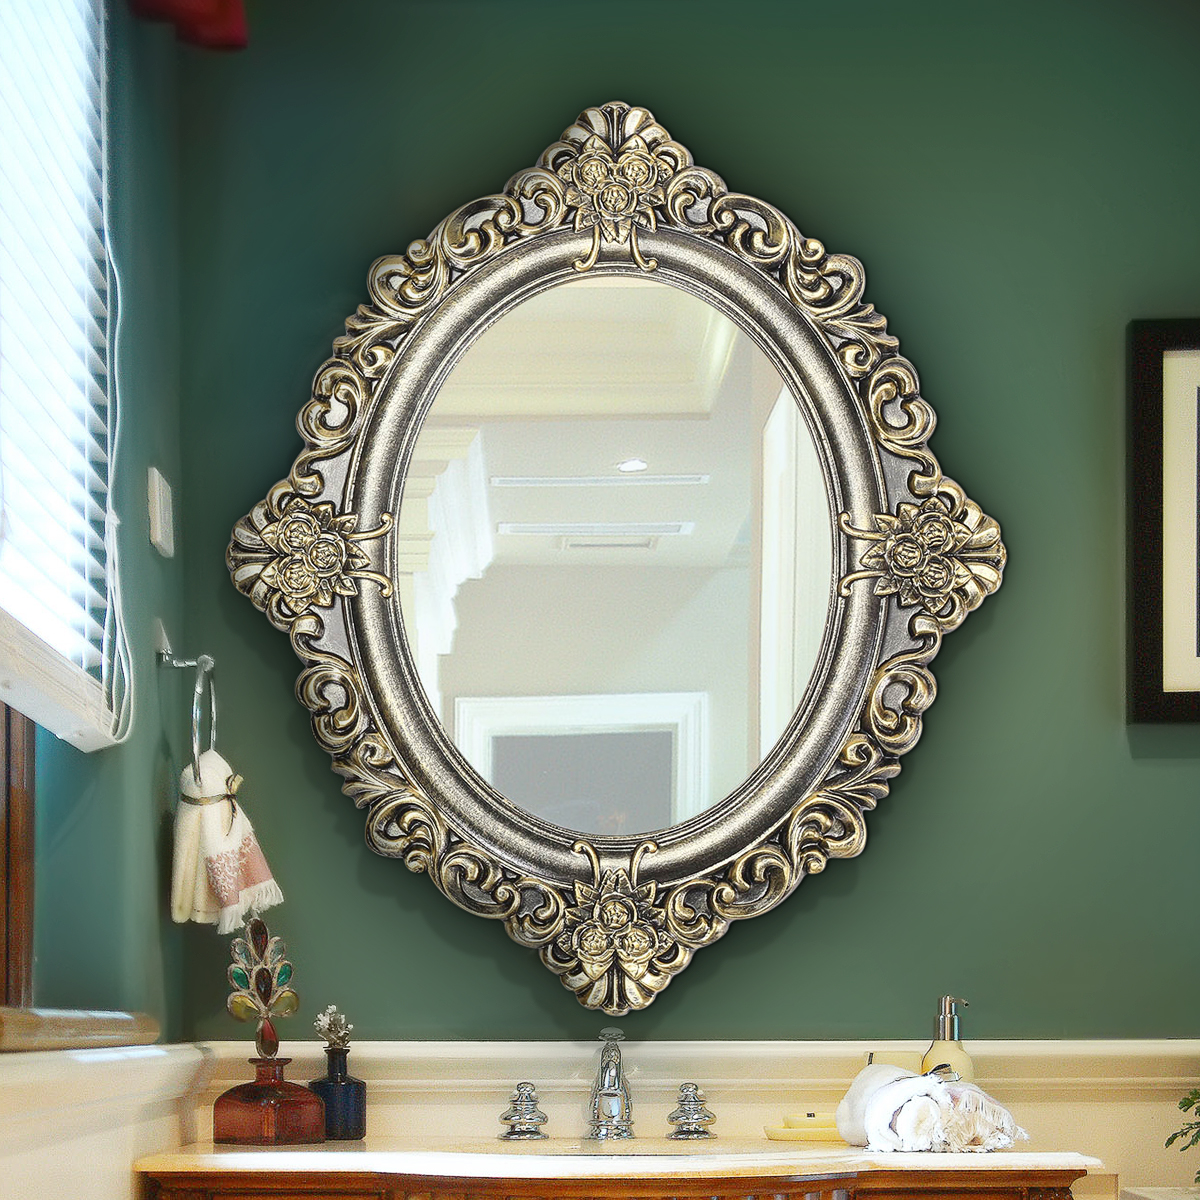 Retro Vintage Decorative Mirror 23 Inch Oval Wall Mouted